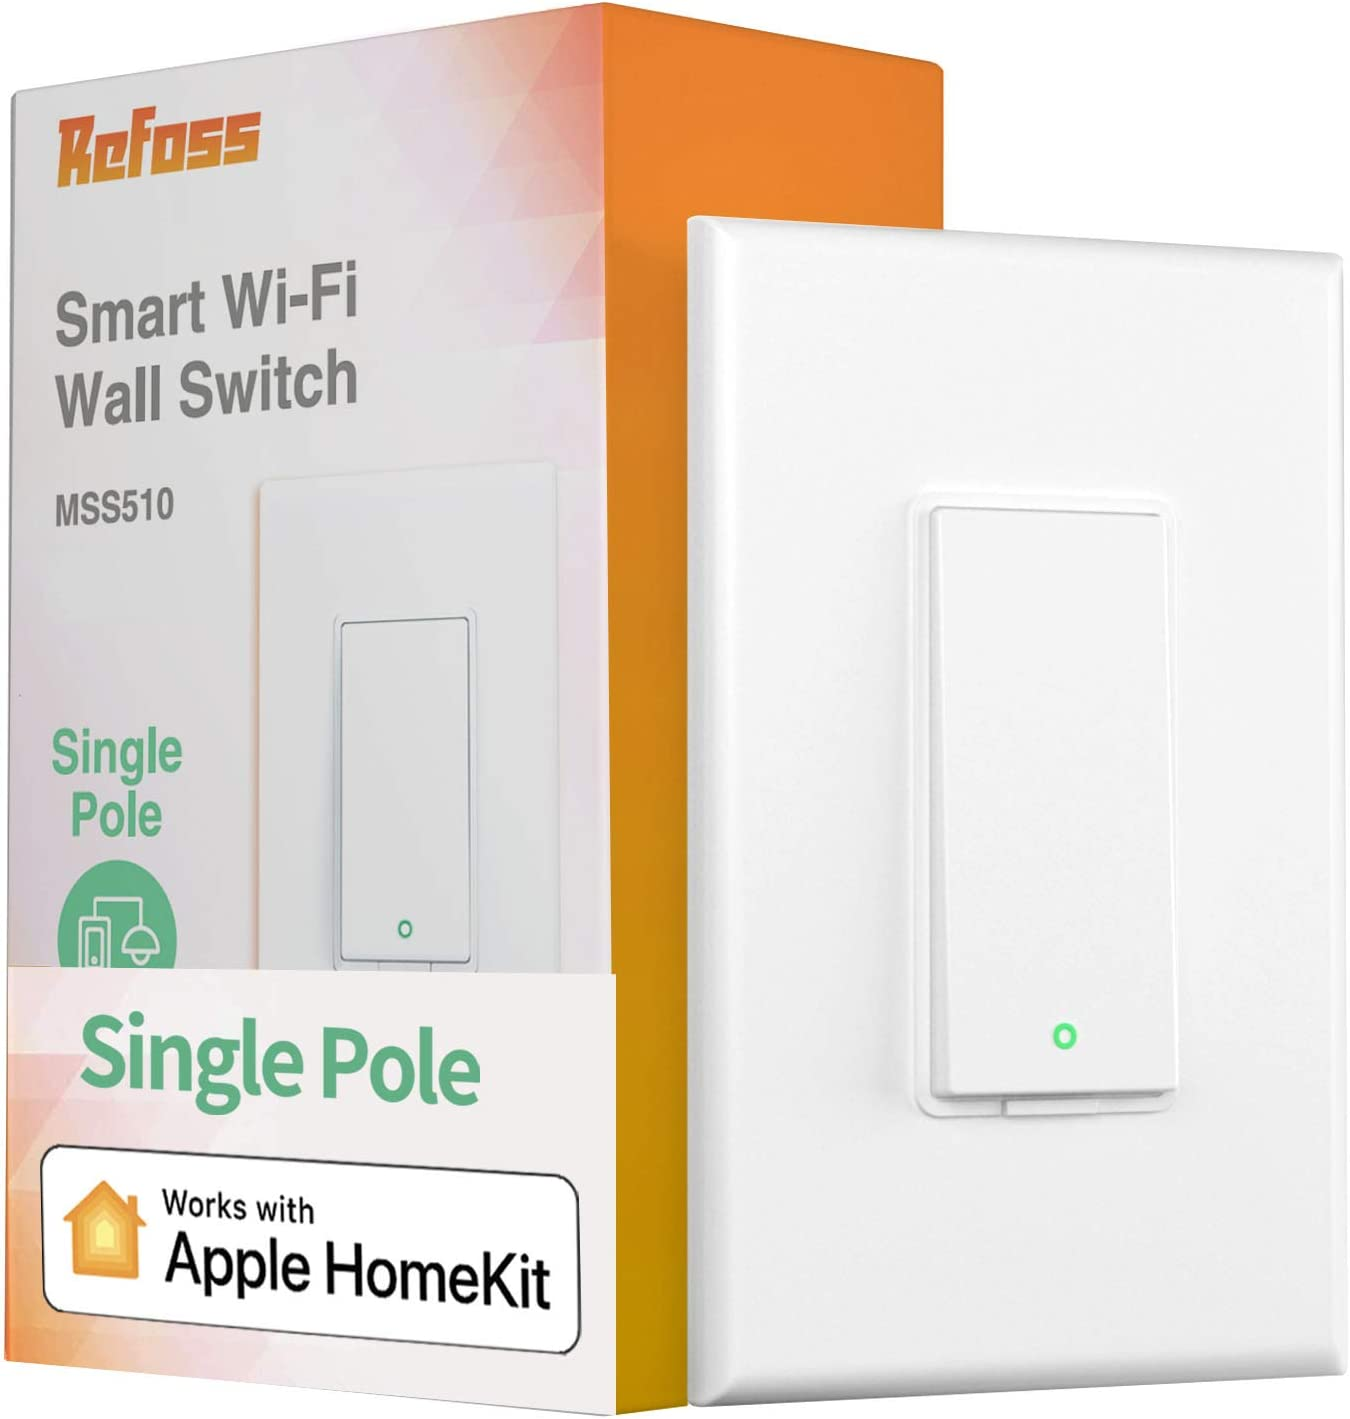 Smart Light Switch Apple Homekit - Refoss Single Pole Smart Switch Wi-Fi Wall Switch Compatible with Siri, Alexa & Google Assistant, Remote Control, Voice Control, Schedule, Neutral Wire Required